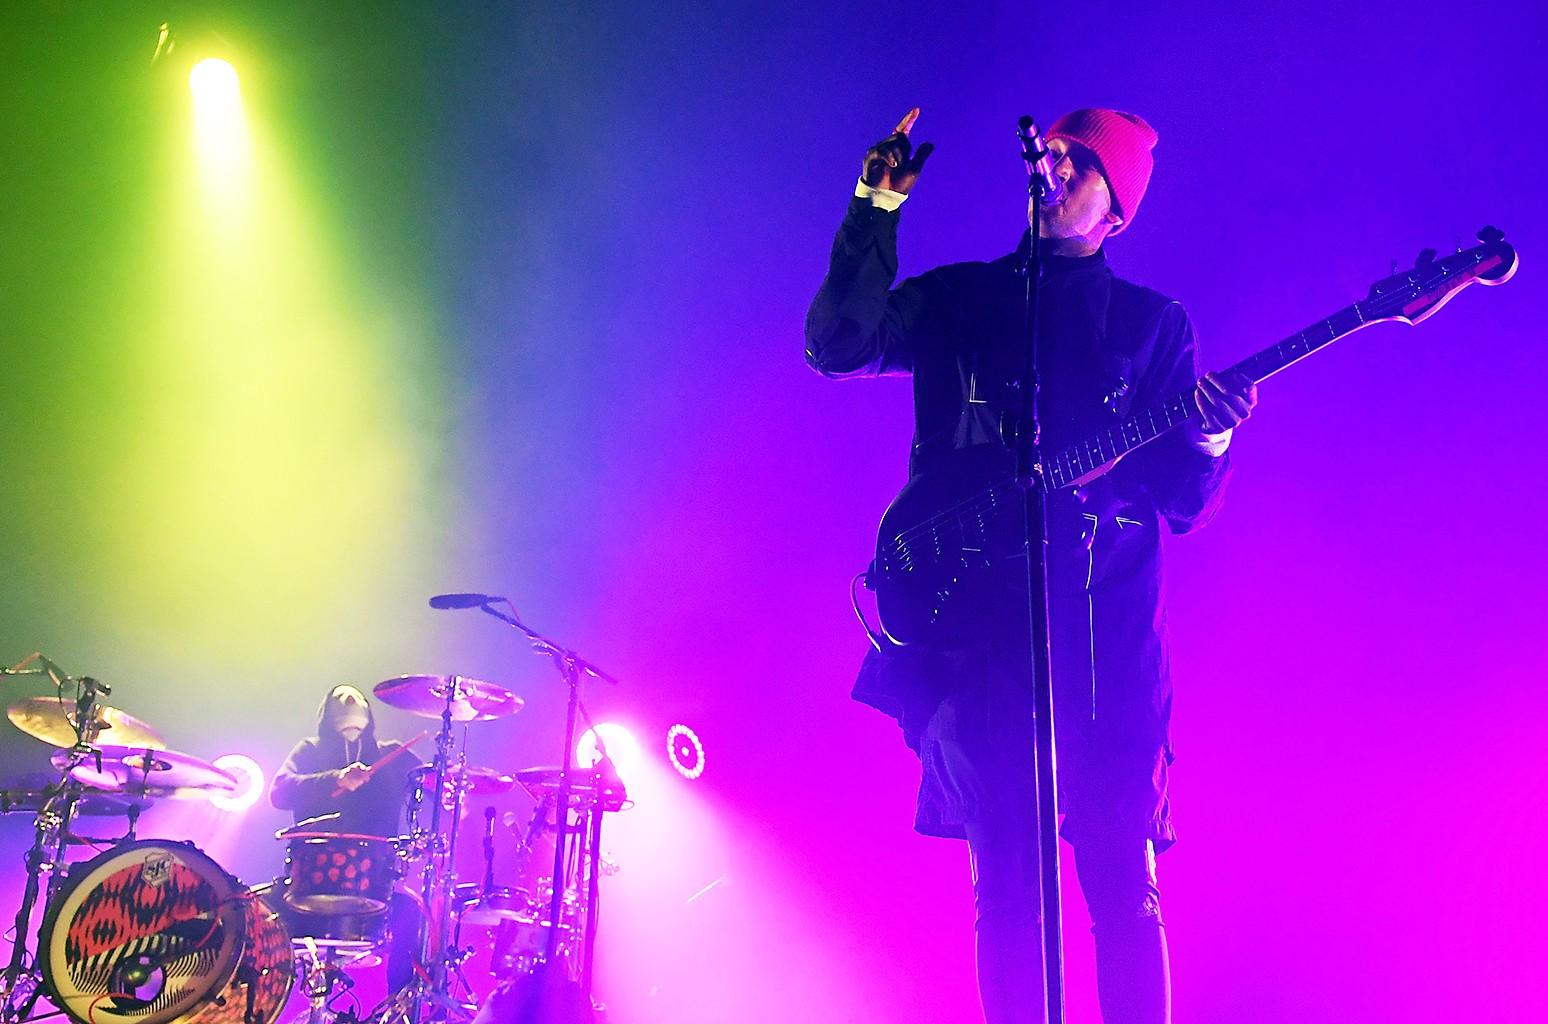 Twenty One Pilots Sound Unconcerned With Pop Success On New Songs